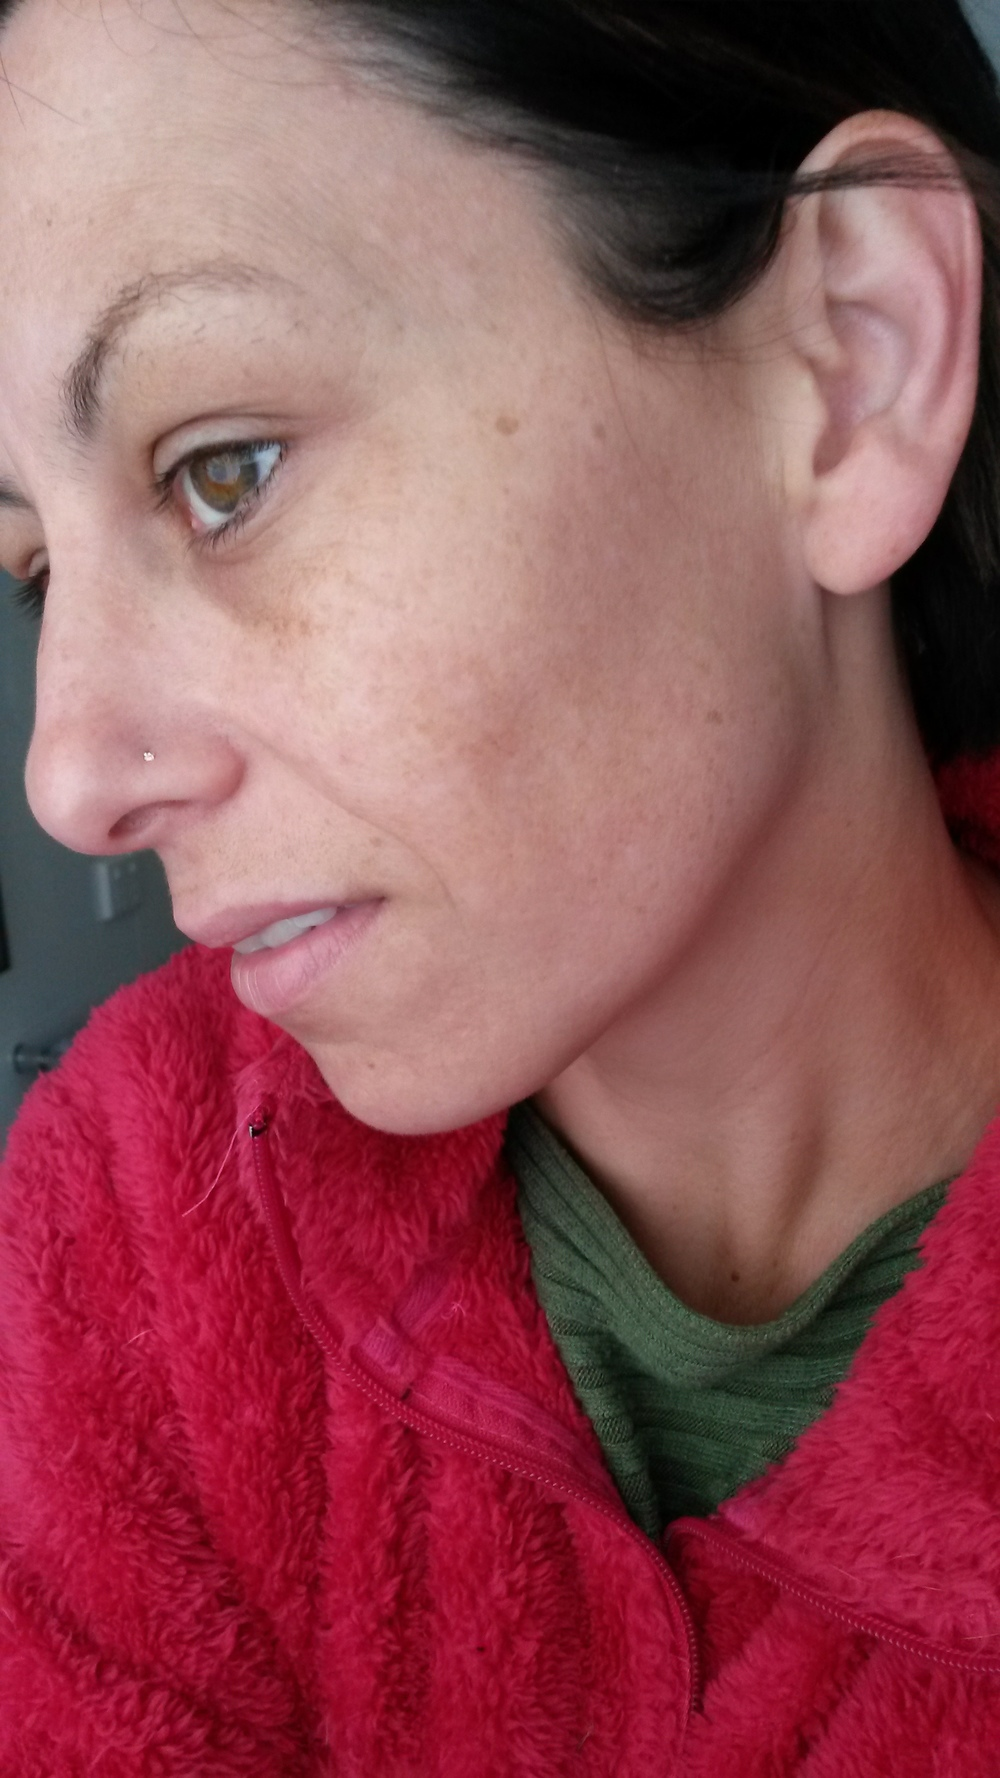 NEWA TRIAL AFTER 1 MONTH (click for close up)